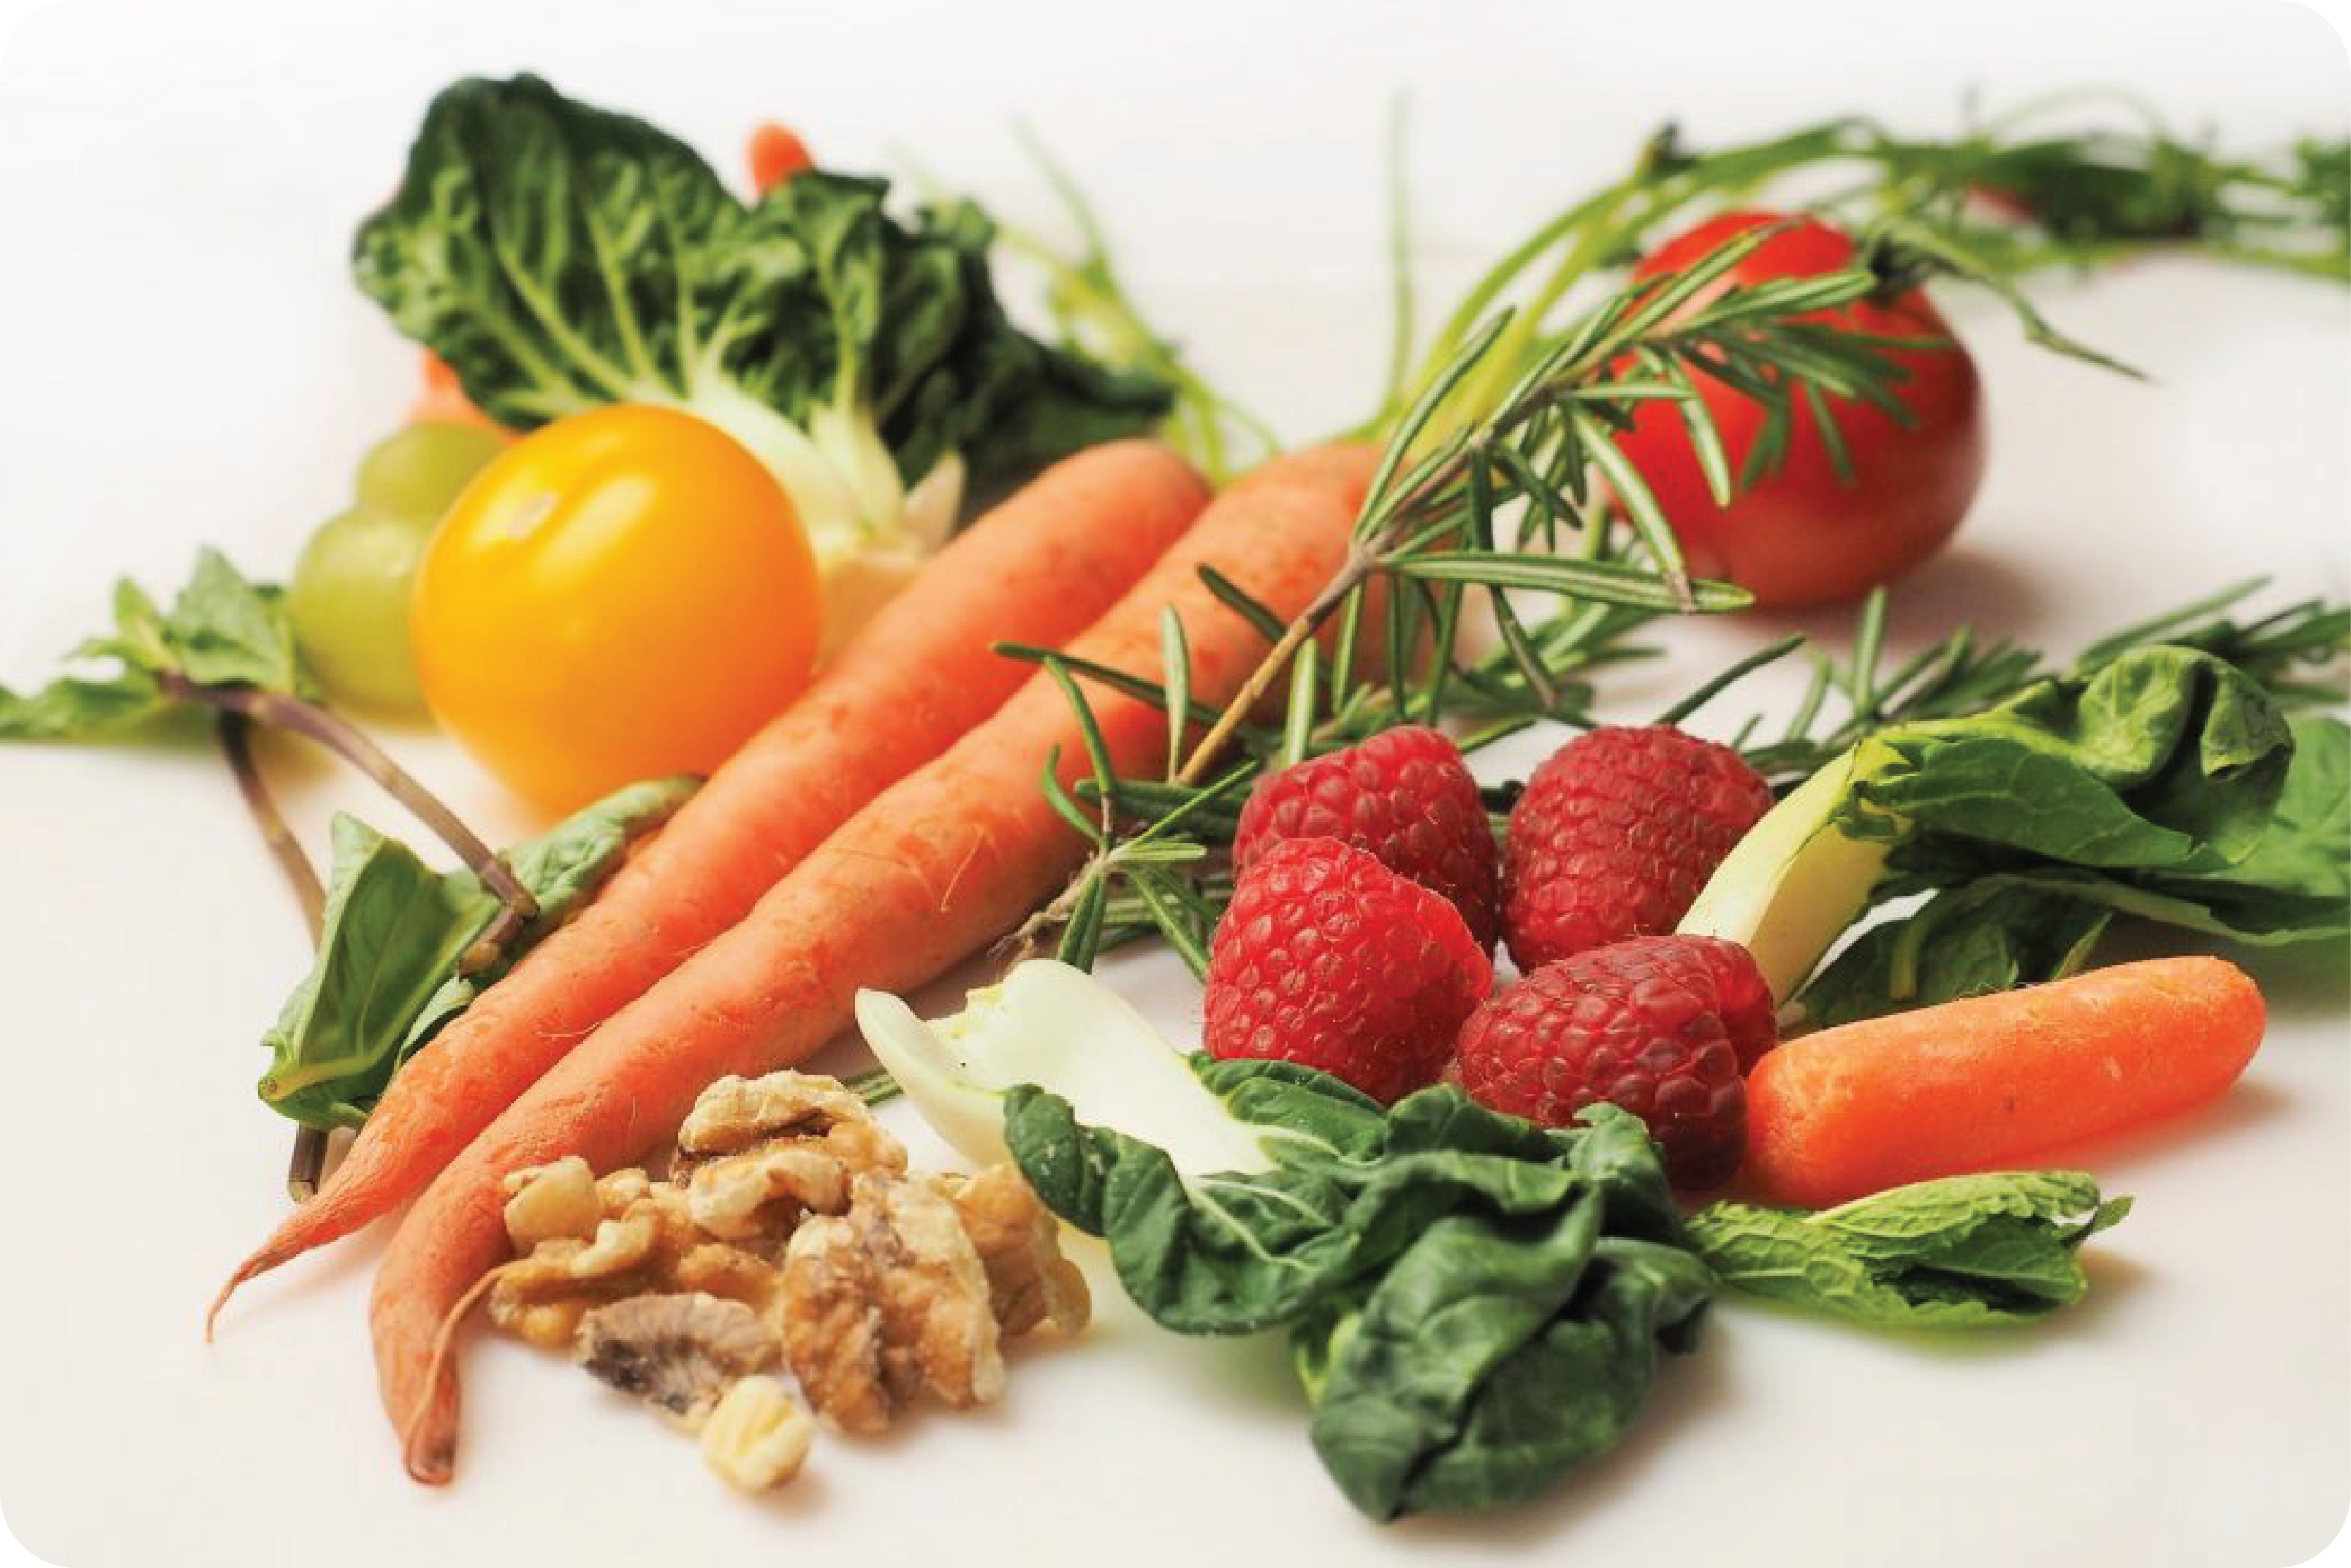 5 Food Safety Tips to Prevent Foodborne Illnesses